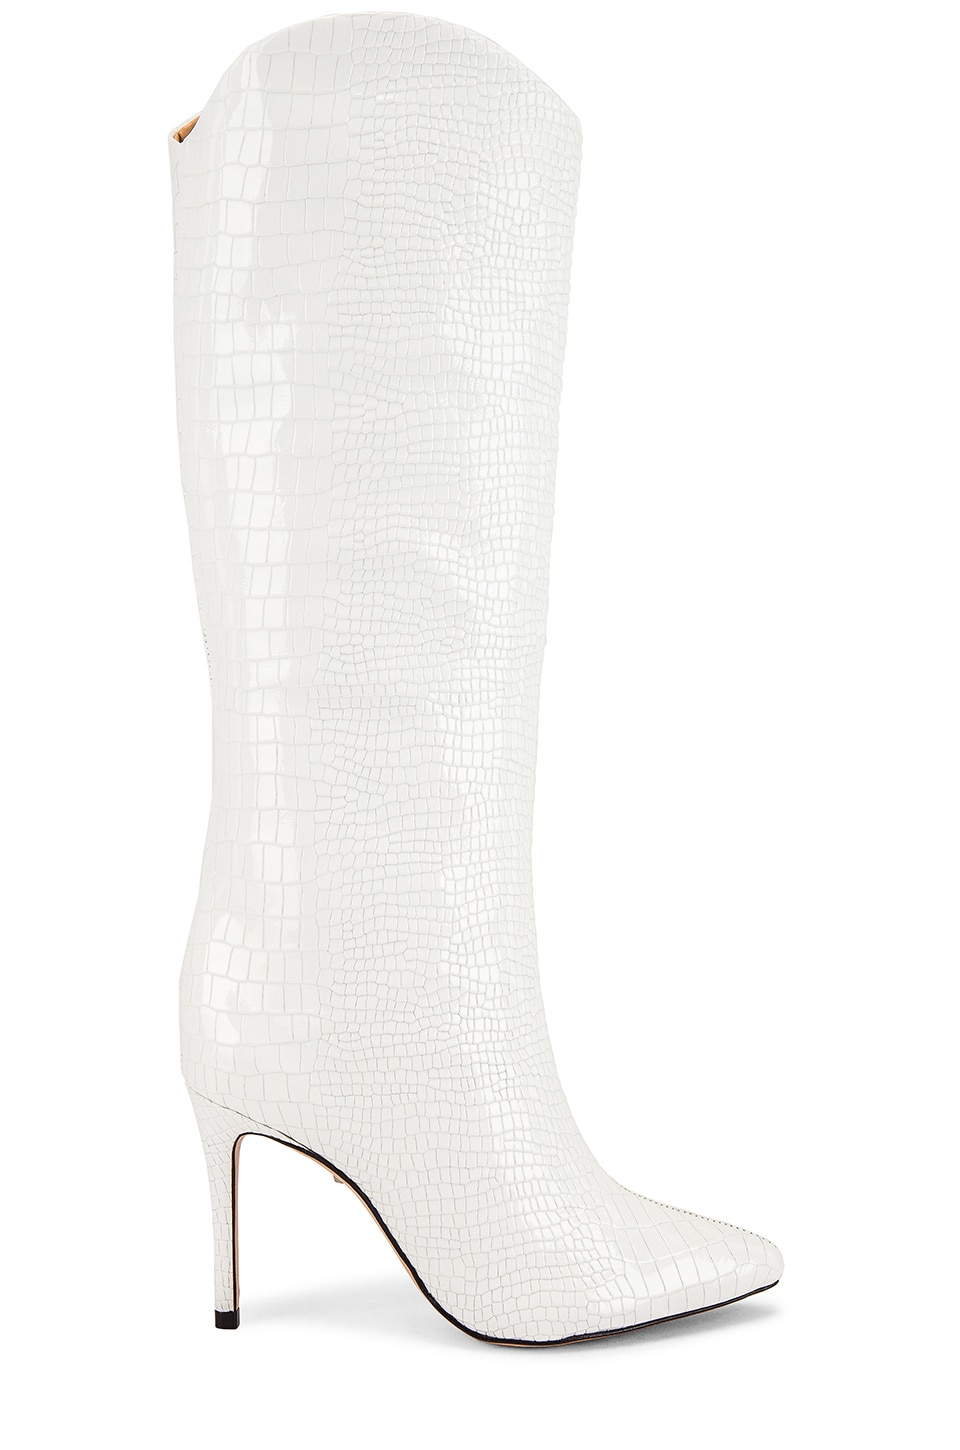 Schutz Maryana Boot in White Croc